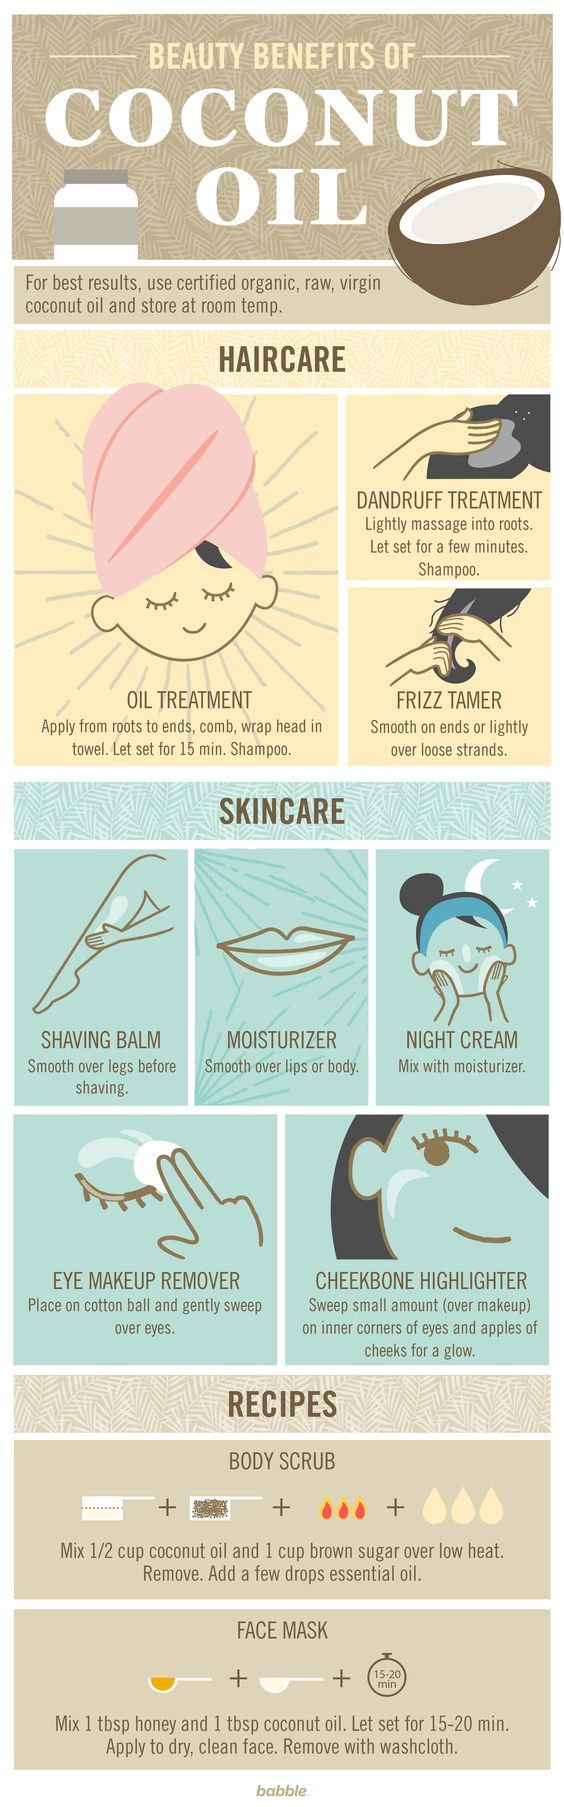 Here are all of the DIY ways to use coconut oil in your beauty routine.